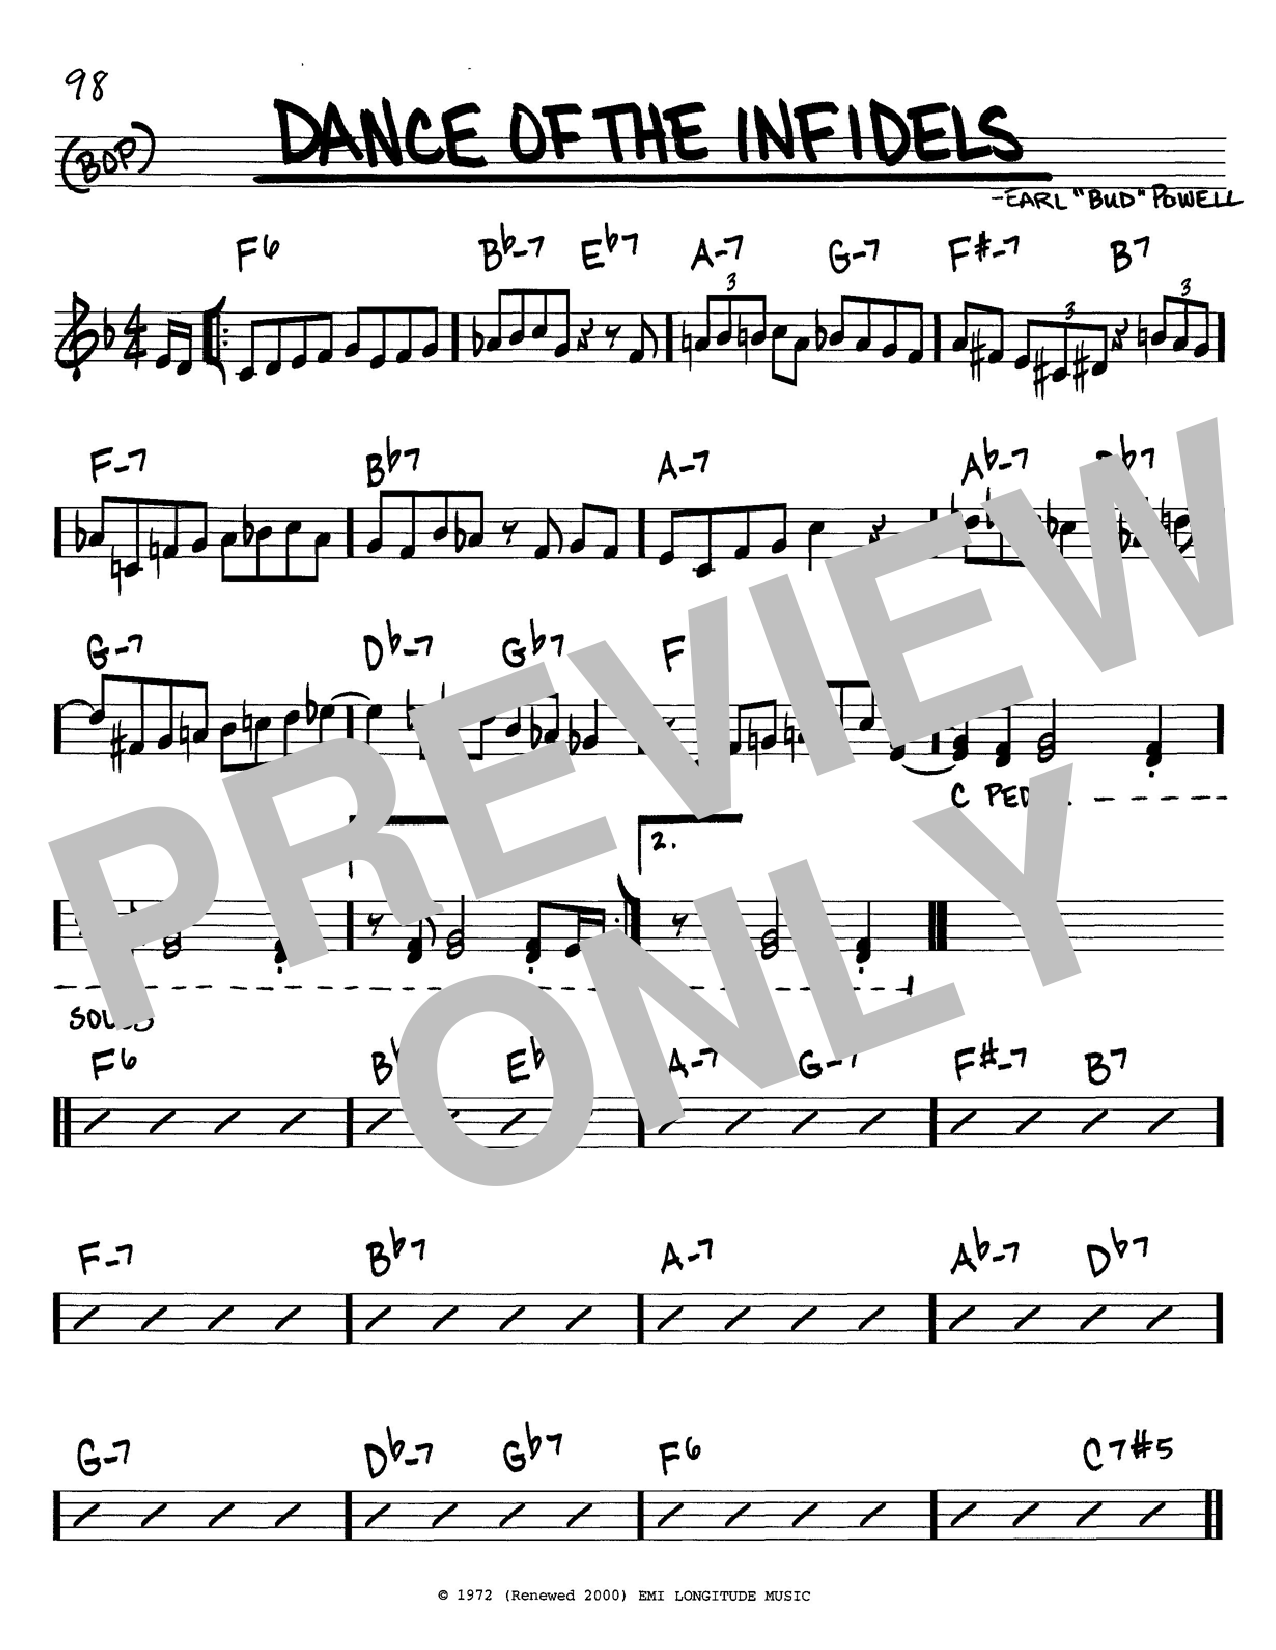 Bud Powell Dance Of The Infidels sheet music notes and chords